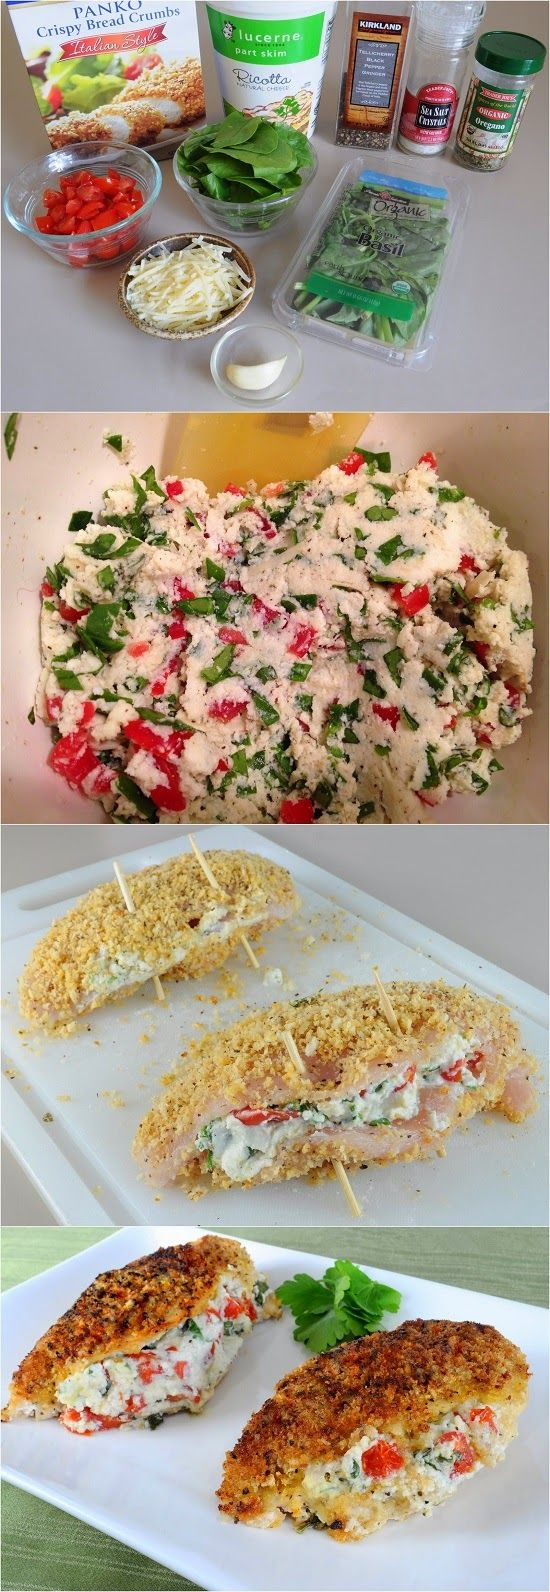 Italian Panko Crusted Stuffed Chicken -I made this gluten free by using almond meal and Italian spices instead of Panko